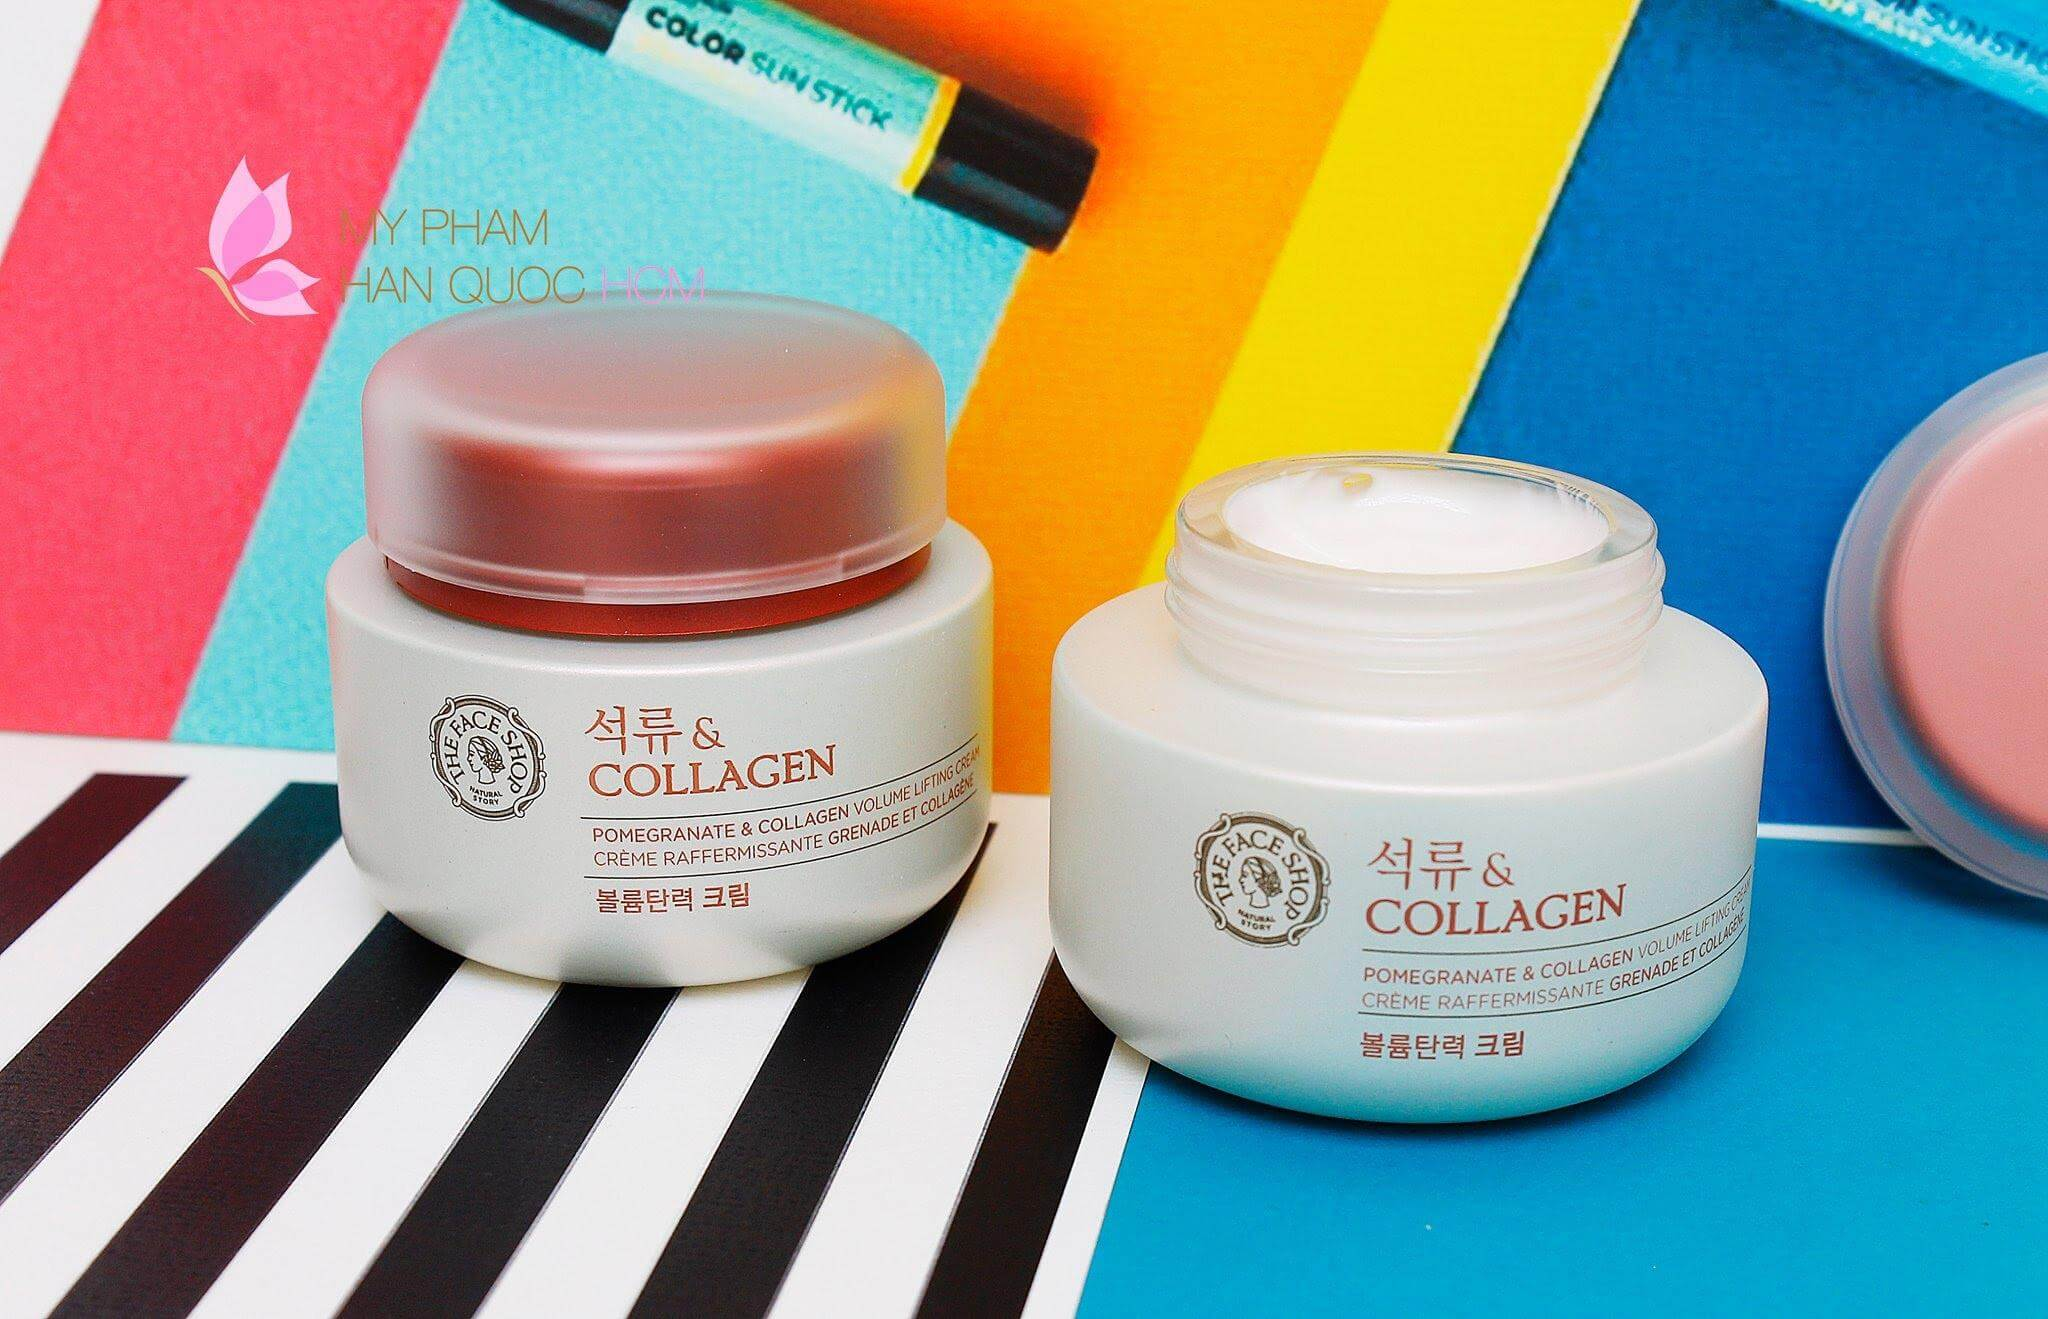 kem-duong-thefaceshop-pomegranate-and-collagen-volume-lifting-cream-03